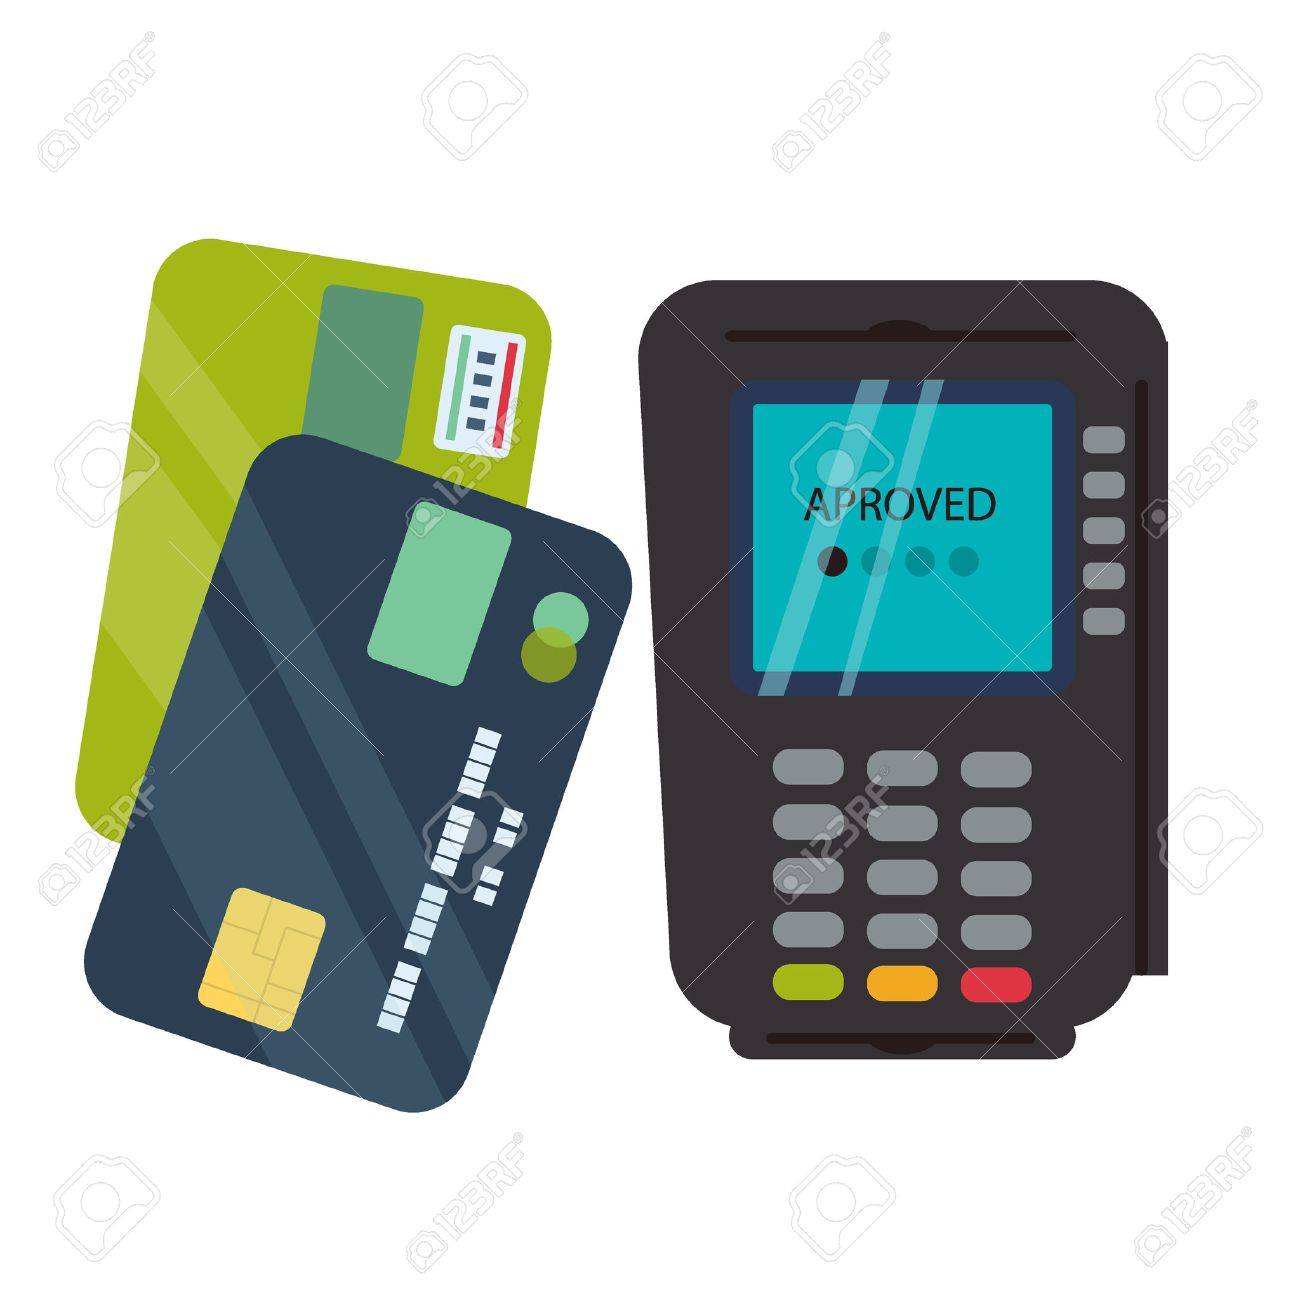 Pos terminal isolated on white background business transaction pos terminal isolated on white background business transaction money payment card pos terminal with reheart Images